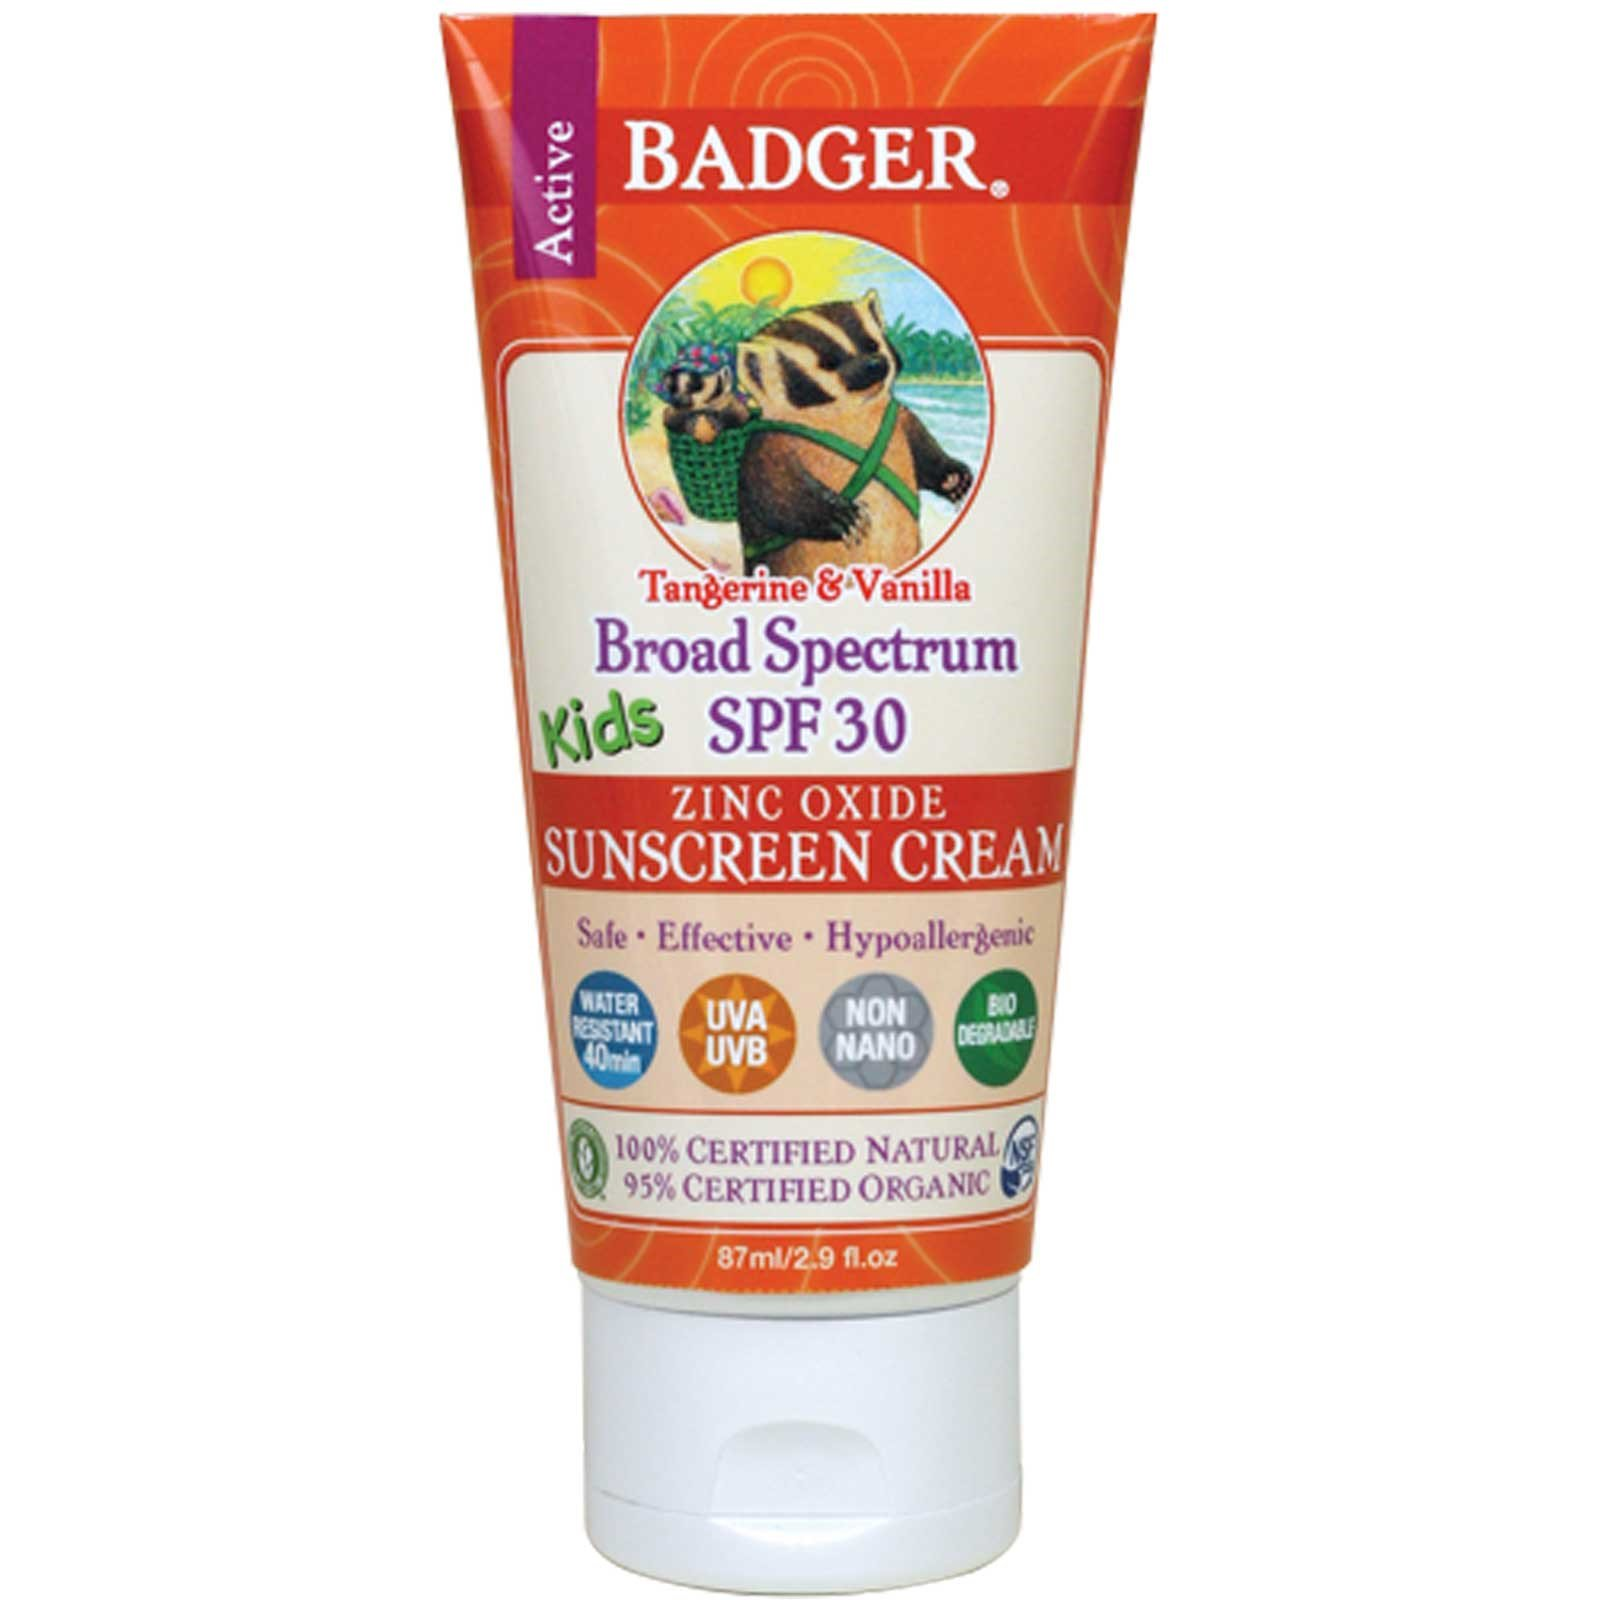 Badger Company, Active Kids, Zinc Oxide Sunscreen Cream, SPF 30, Tangerine & Vanilla, 2.9 fl oz (pack of 6)